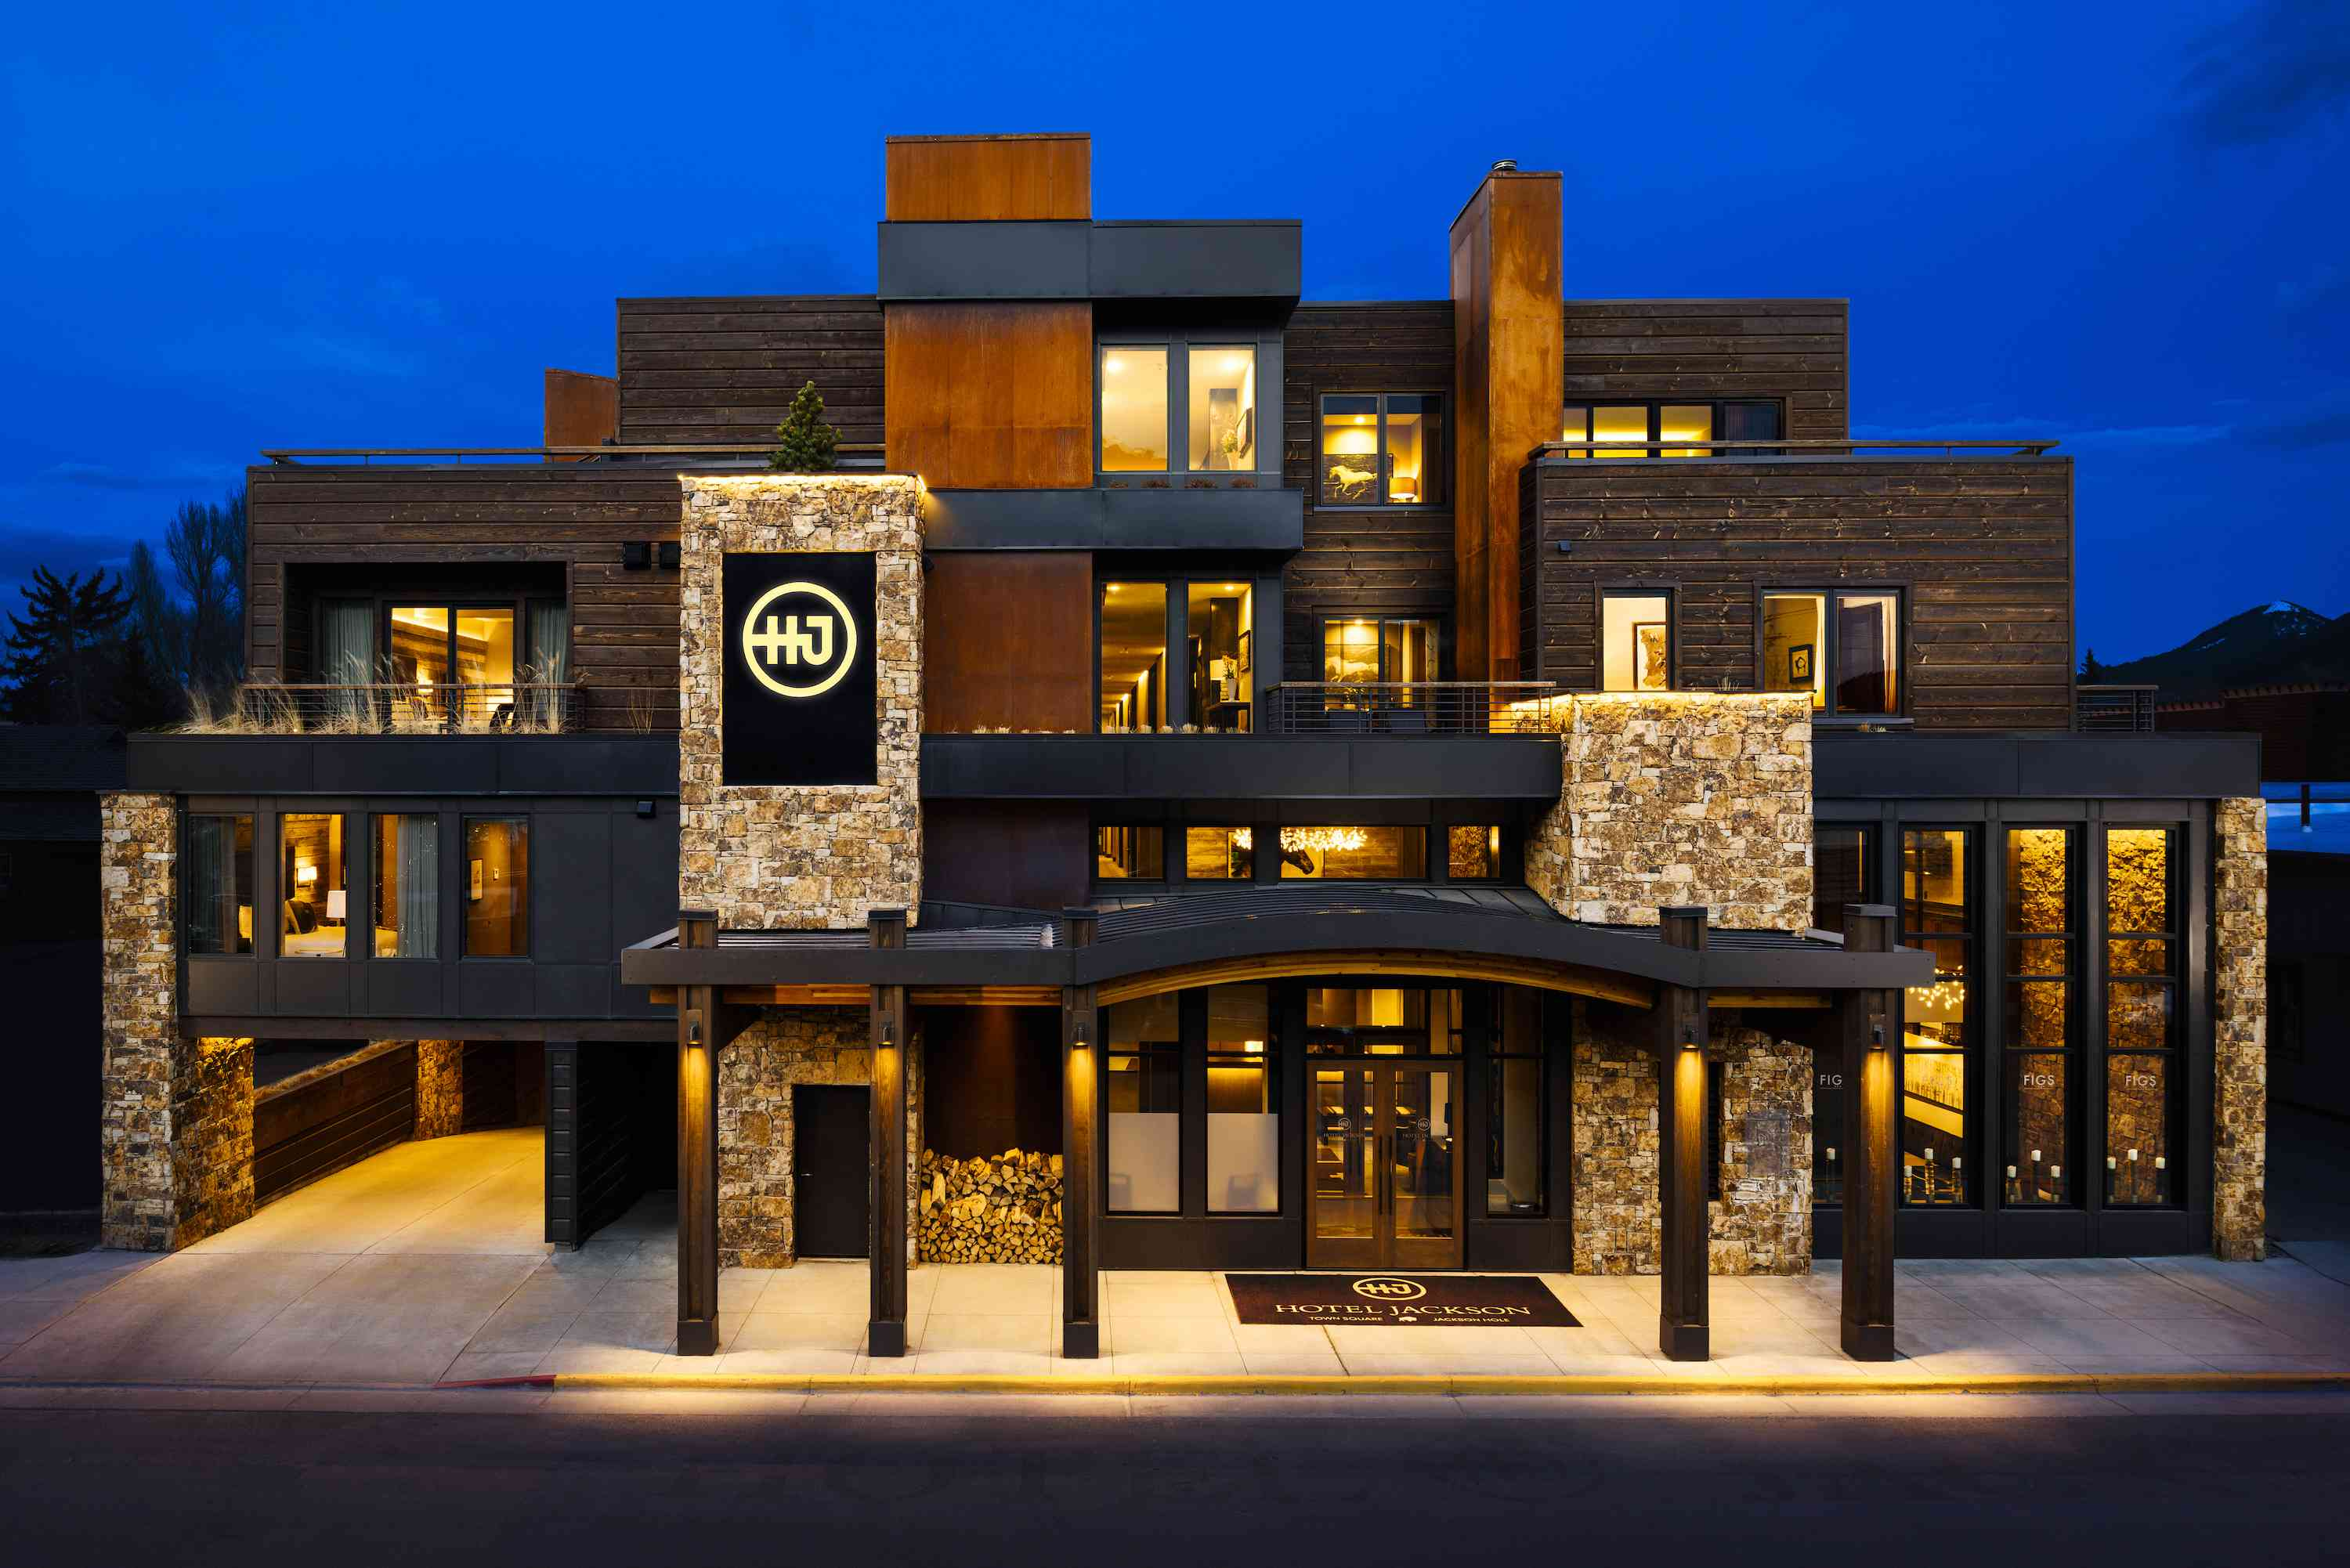 Nighttime view of Hotel Jackson in Jackson Hole, Wyoming